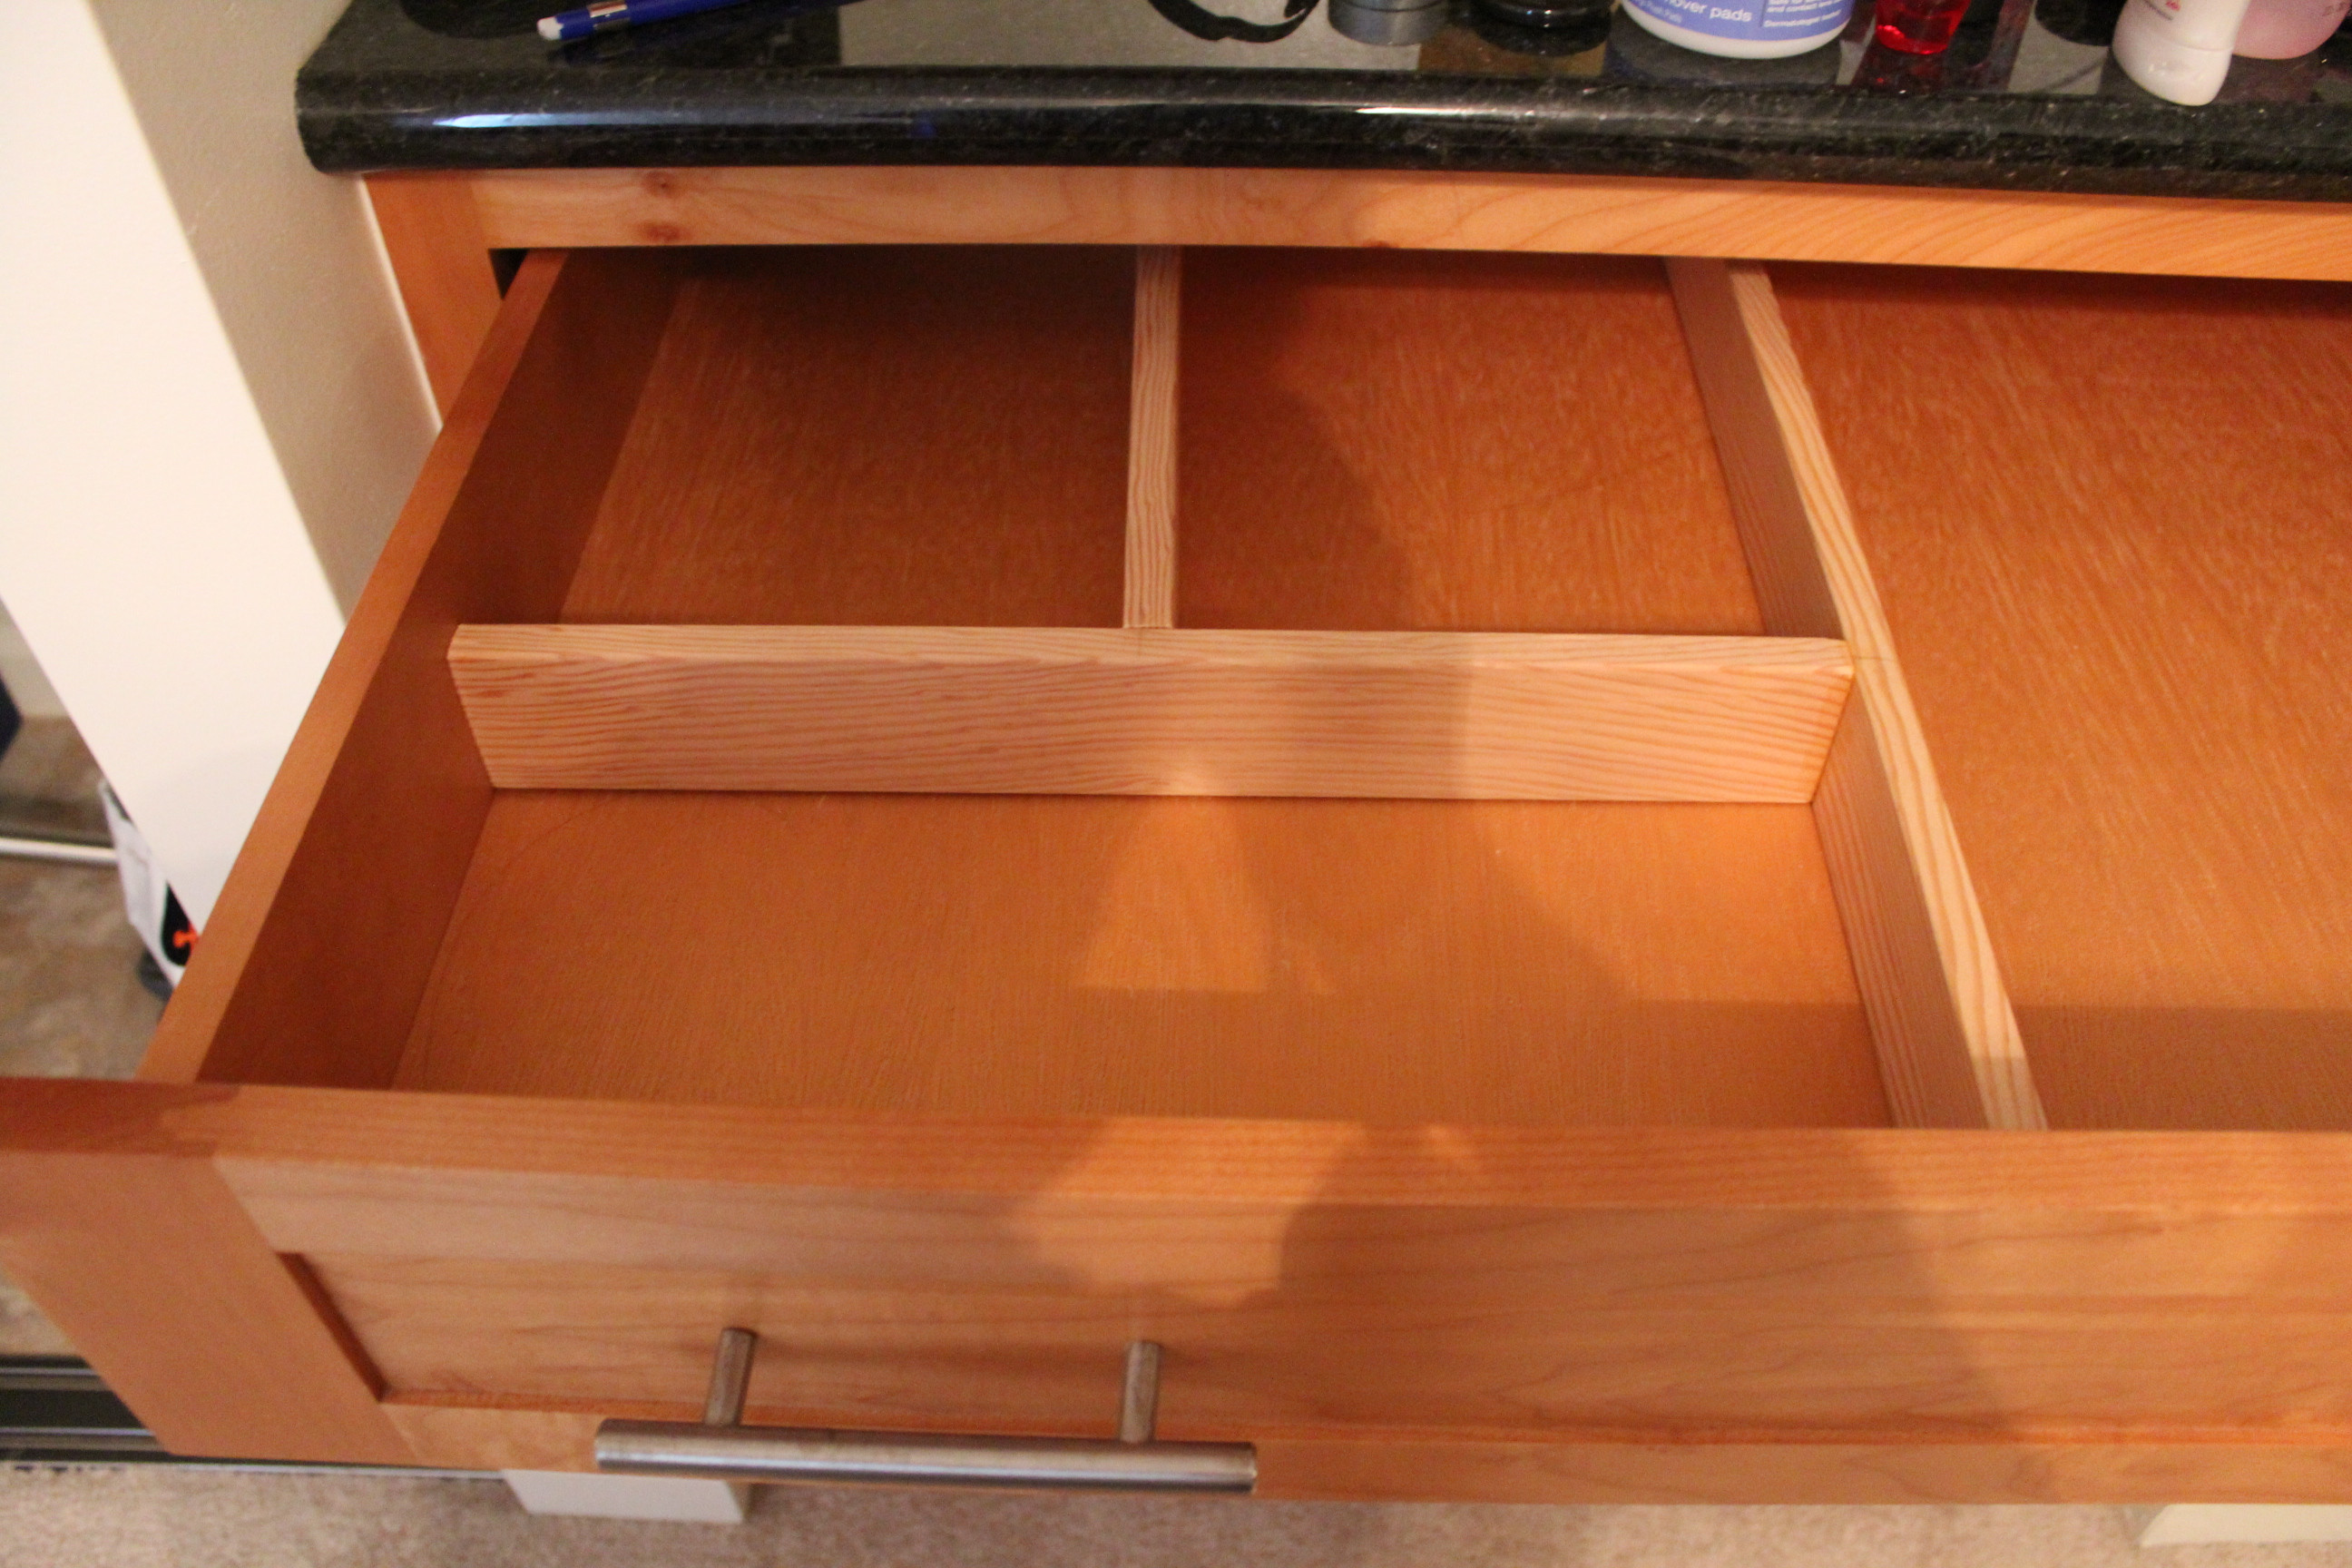 Best ideas about DIY Drawer Dividers . Save or Pin Home Organization DIY Drawer Dividers Now.